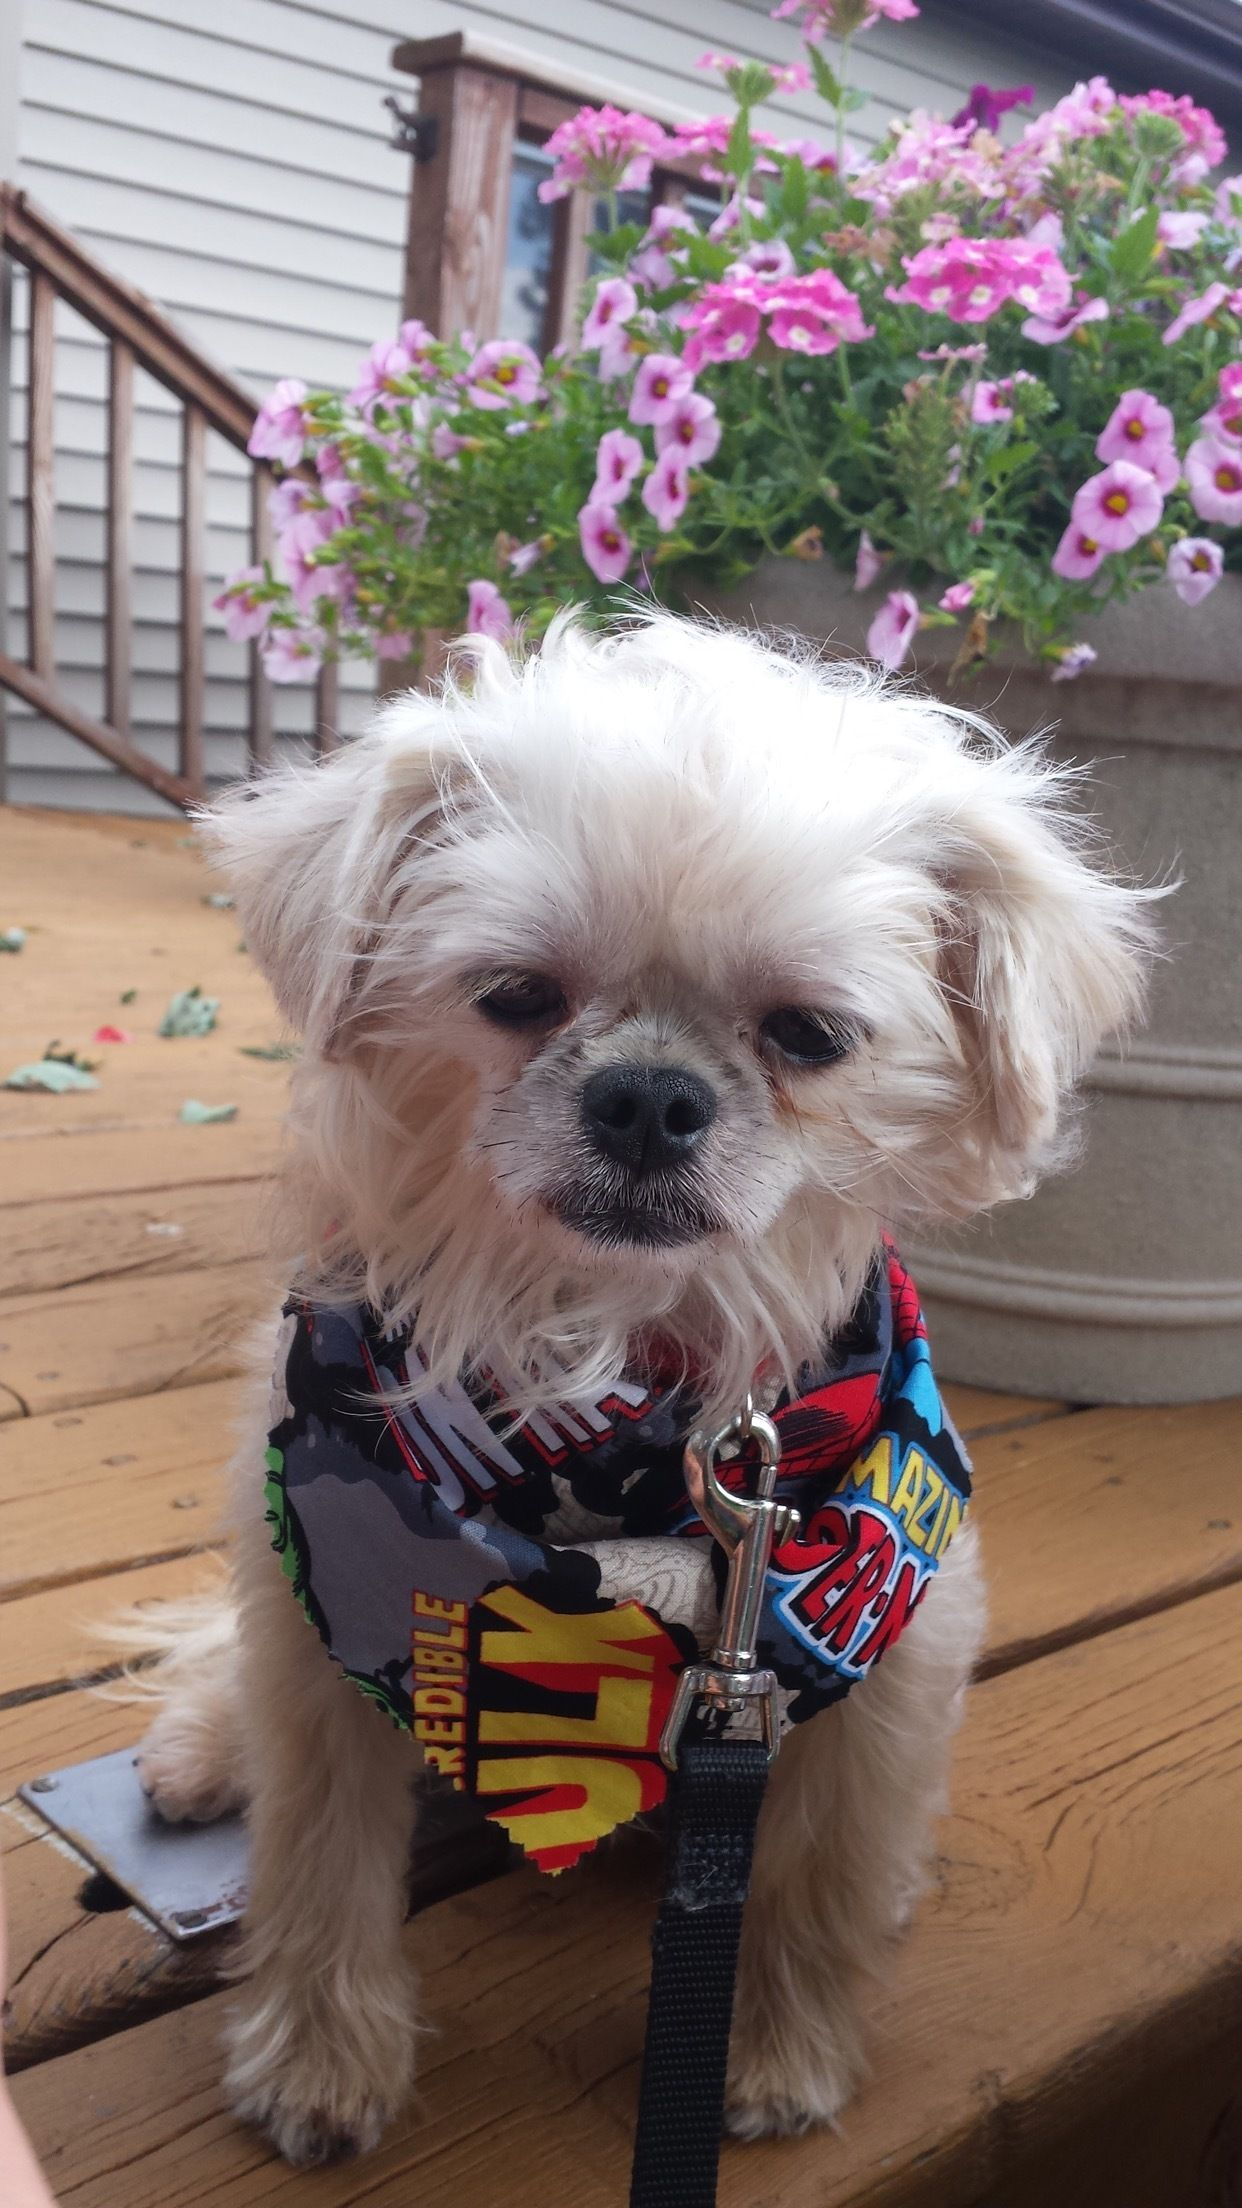 Max Is An Adoptable Shih Tzu Searching For A Forever Family Near